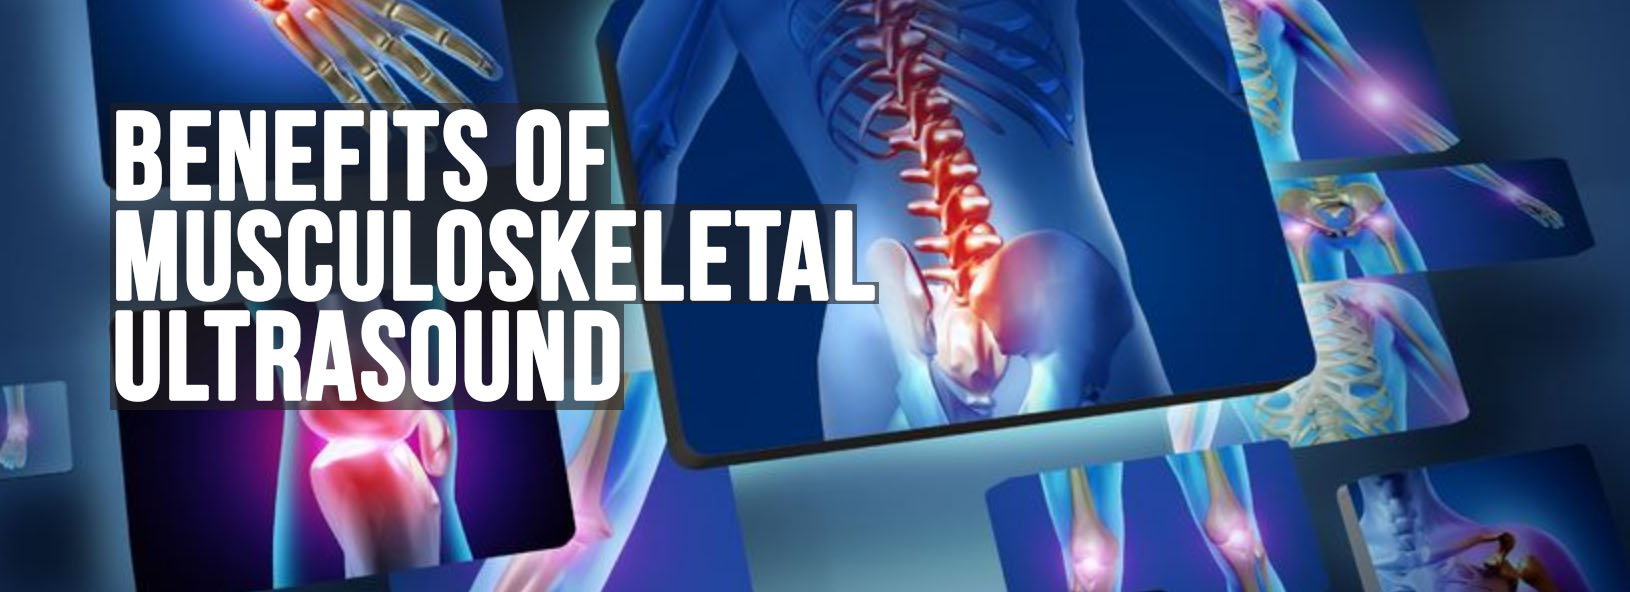 Benefits of Musculoskeletal Ultrasound